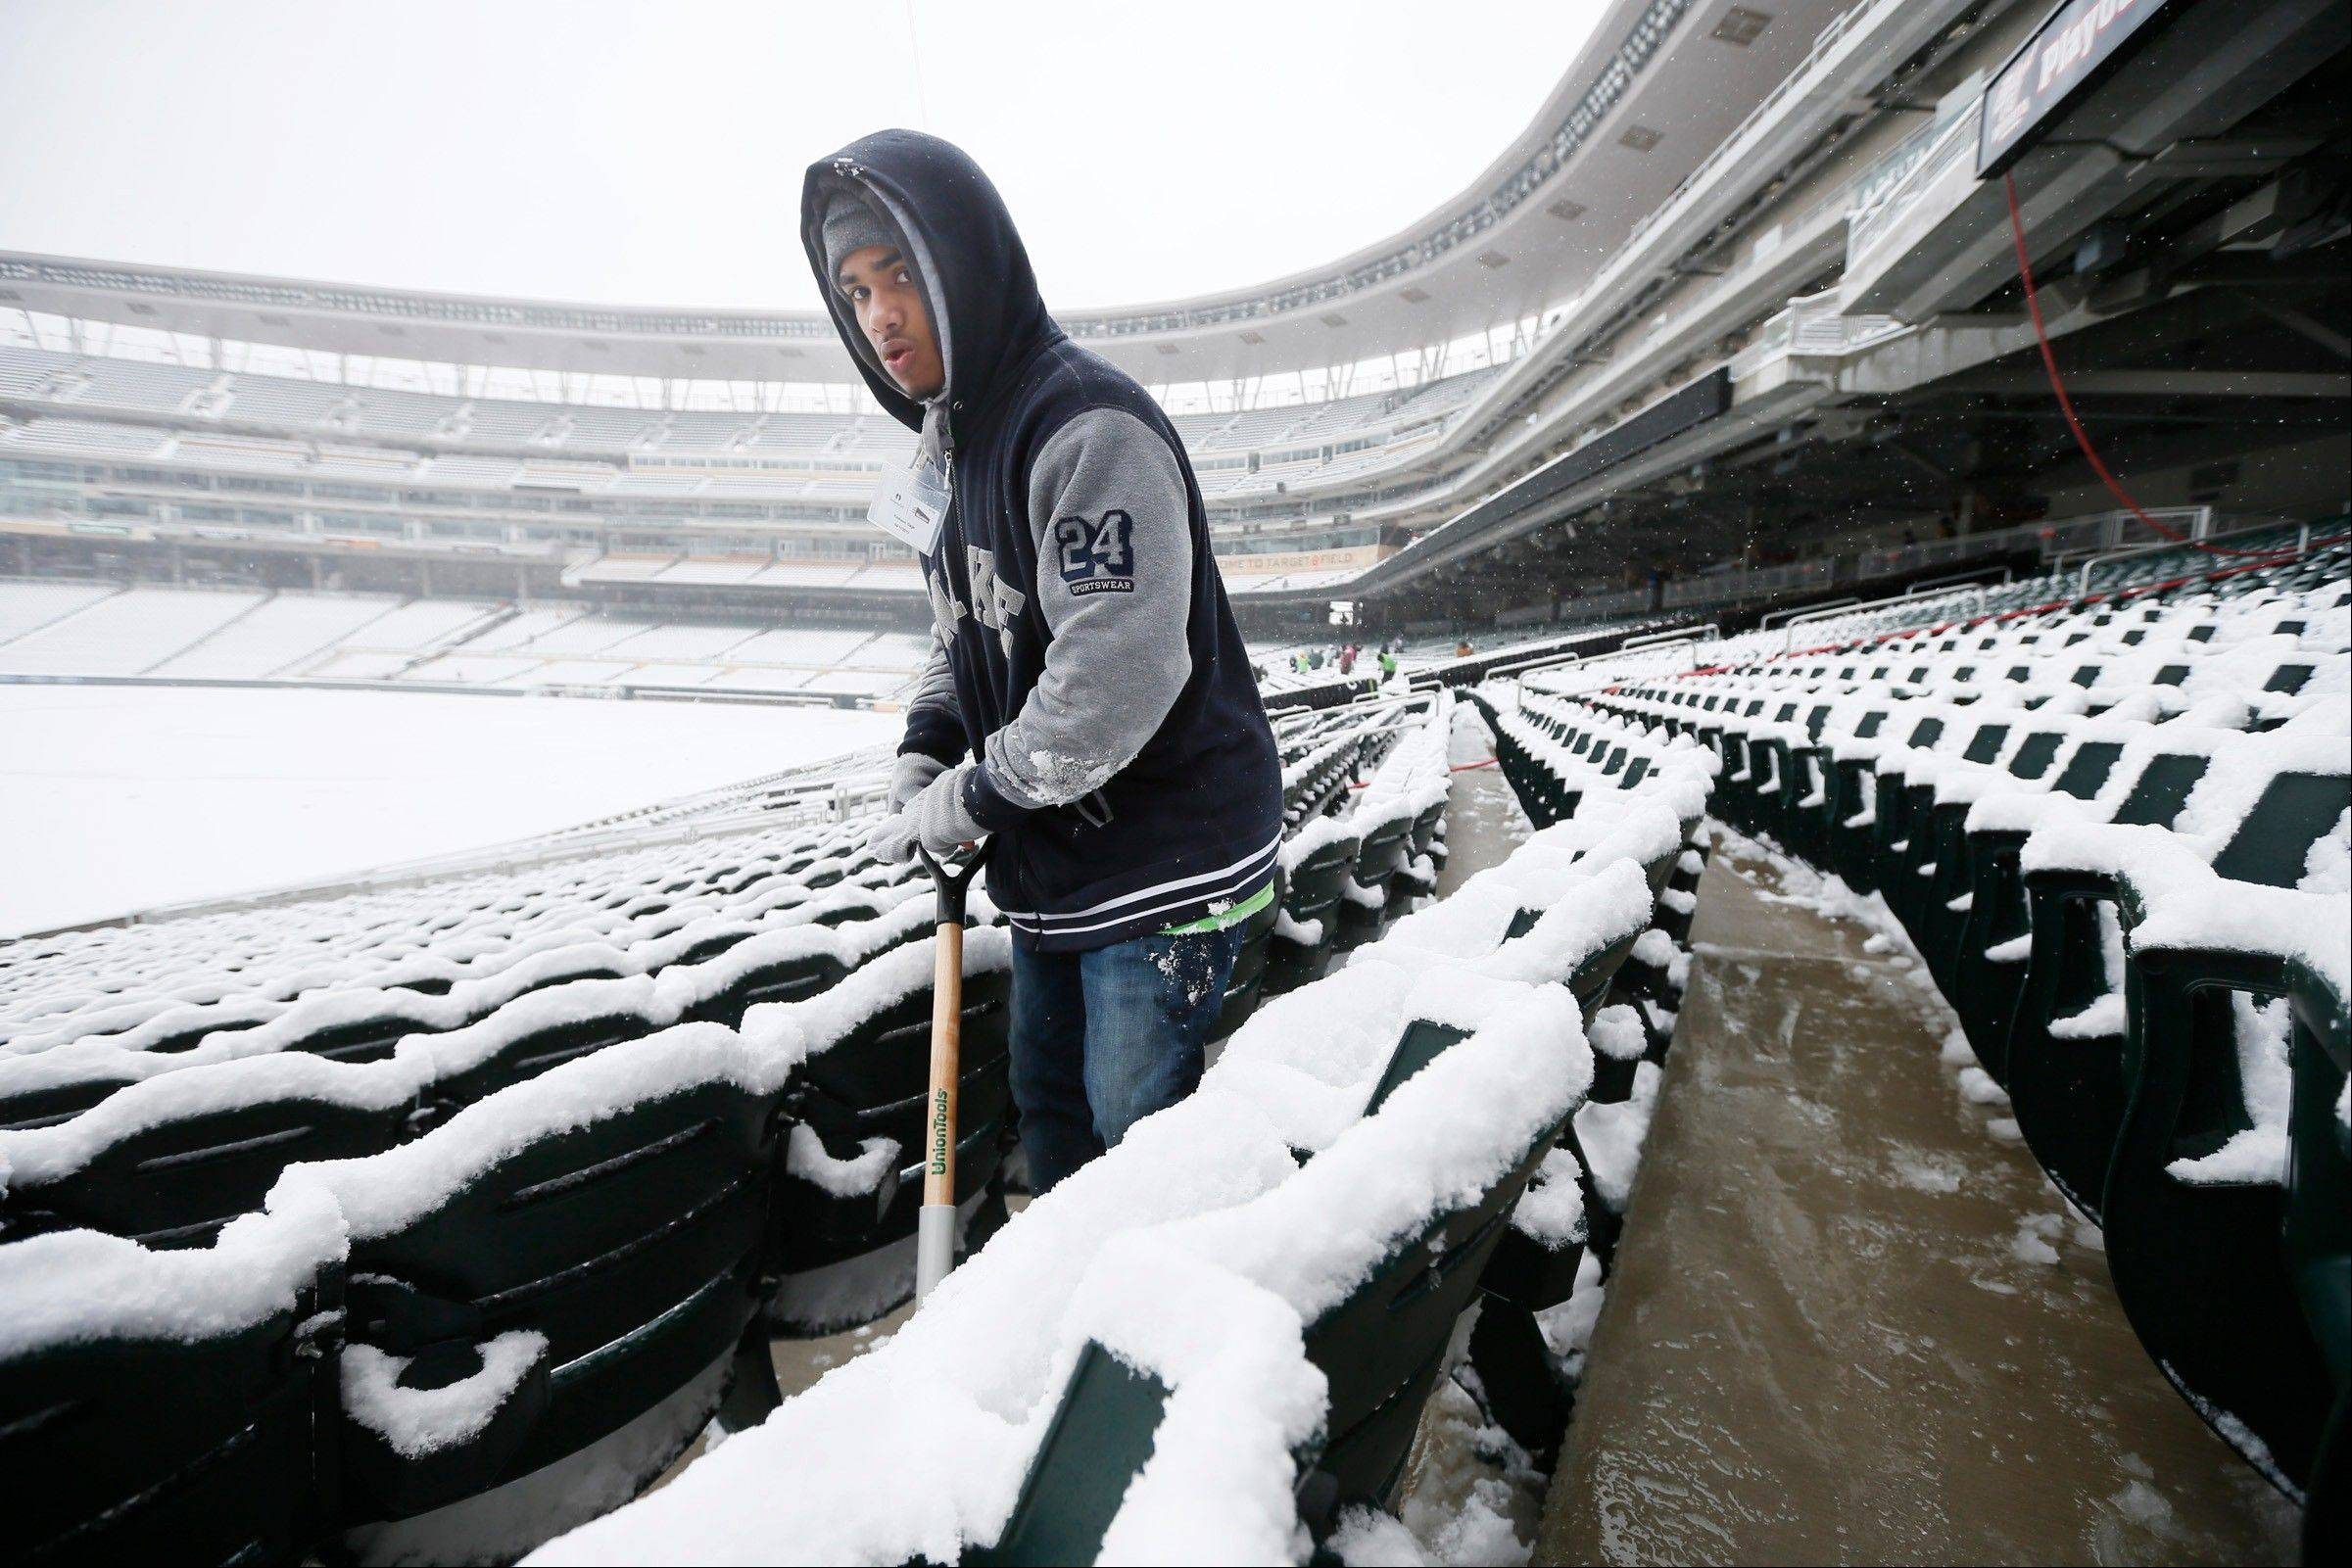 Kashaun Gage removes snow form Target Field on Thursday, April 11, 2013 in Minneapolis. A spring storm packing snow and ice has hit several states in the Midwest, knocking out power in communities and prompting Minnesota's governor to call out the state National Guard to help residents.